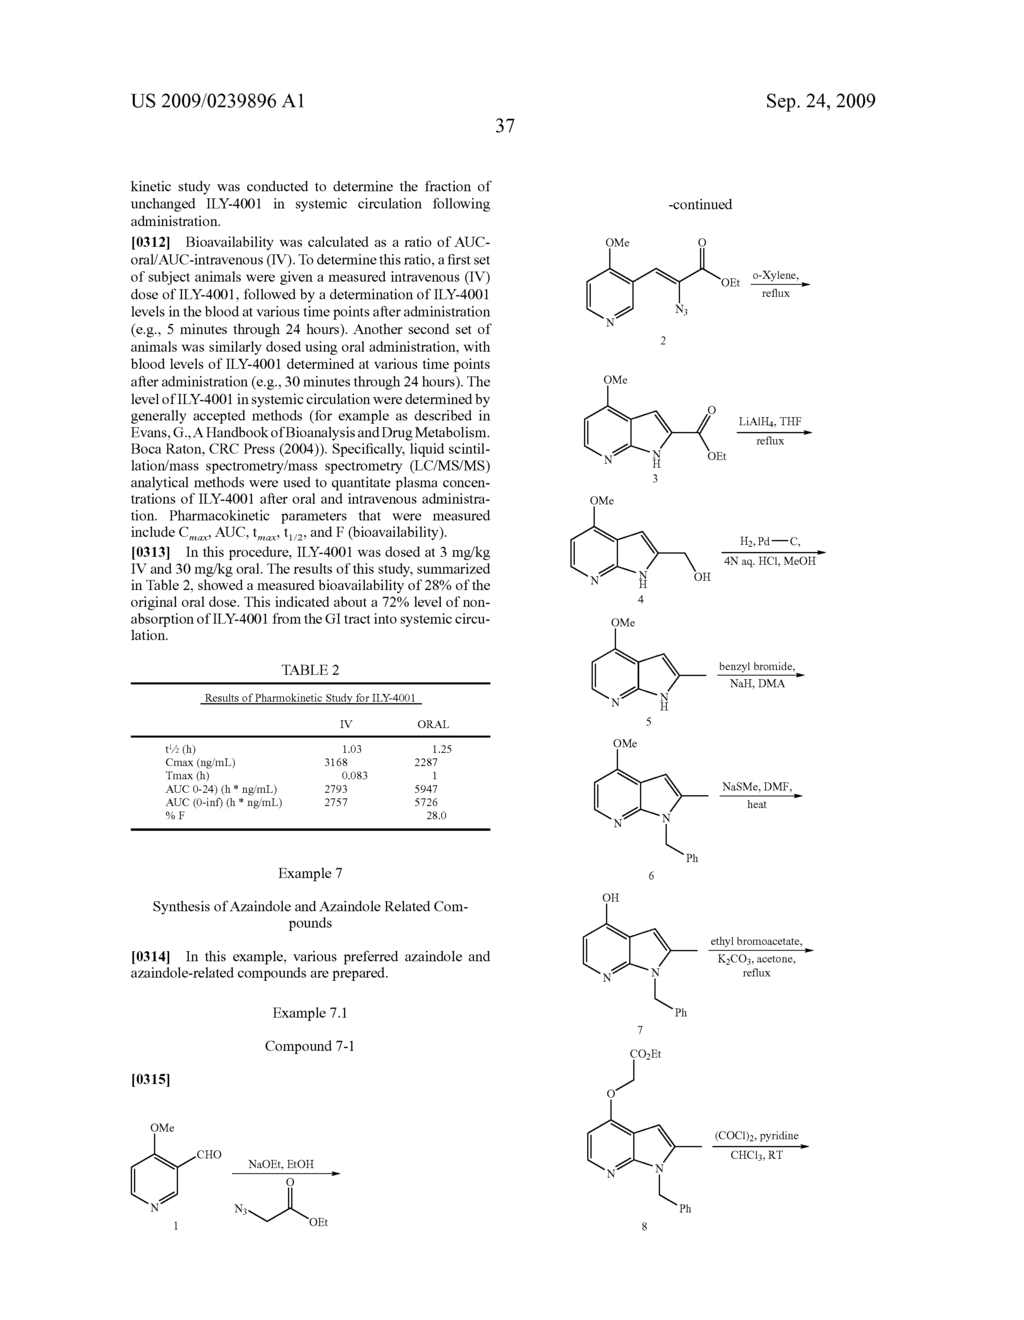 AZAINDOLE COMPOUNDS AND USE THEREOF AS PHOSPHOLIPASE-A2 INHIBITORS - diagram, schematic, and image 47